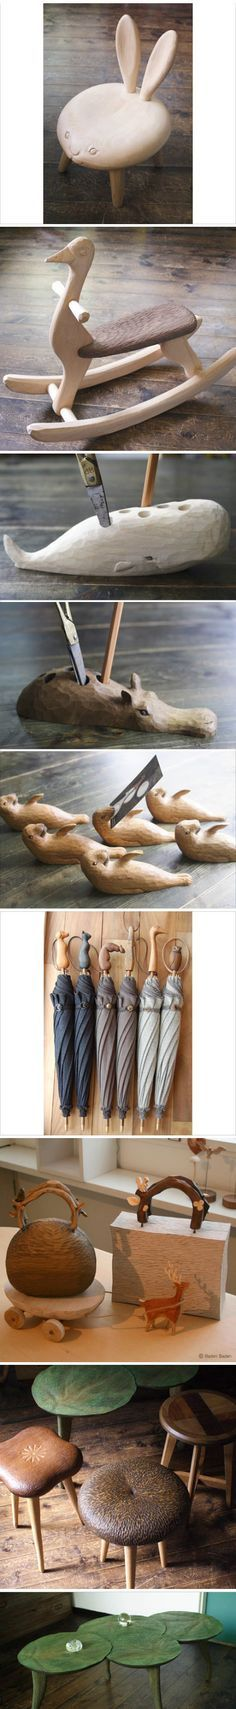 http://www.woodesigner.net offers fantastic advice as well as ideas to wood working